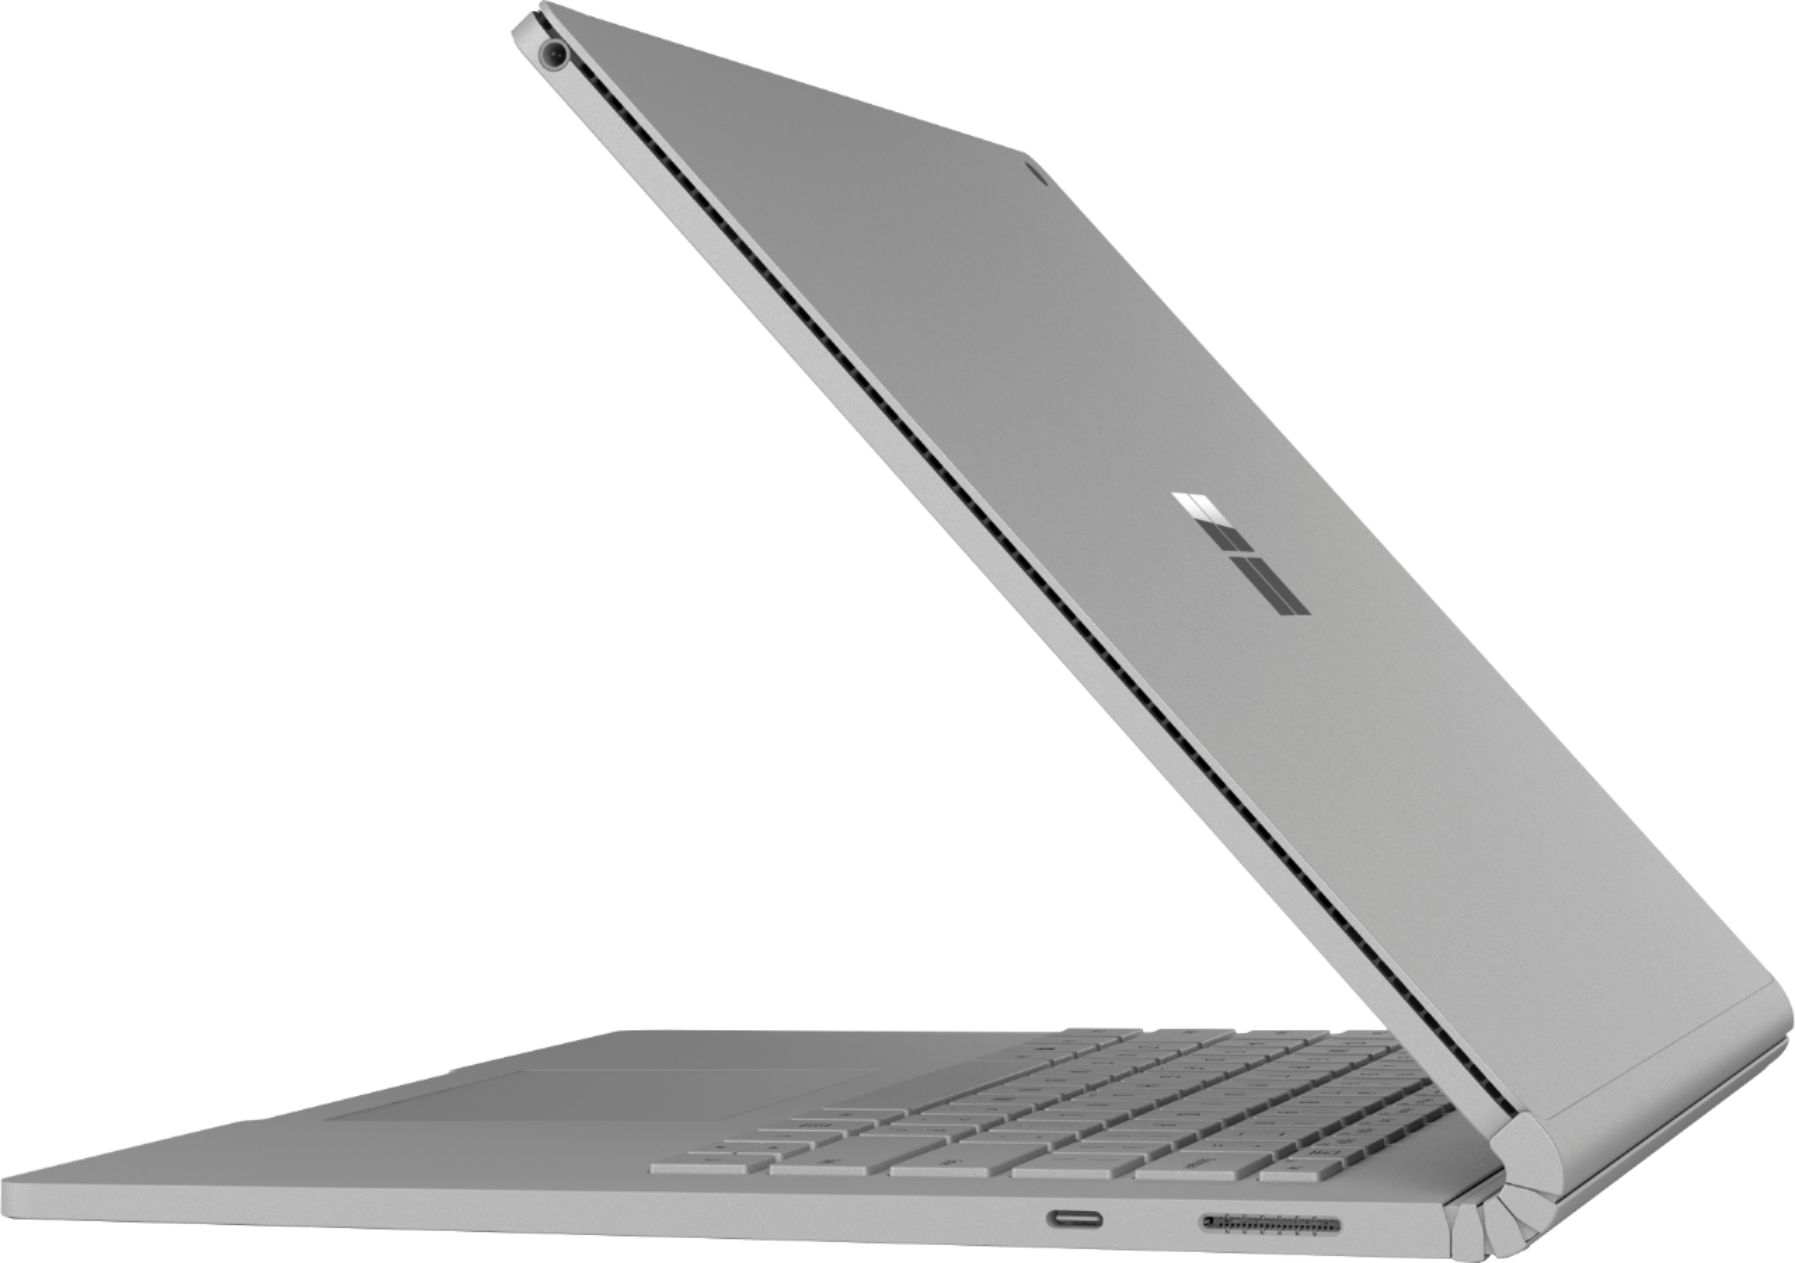 """Left Zoom. Microsoft - Surface Book 2 - 13.5"""" Touch-Screen PixelSense™ - 2-in-1 Laptop - Intel Core i7 - 8GB Memory - 256GB SSD - Platinum."""